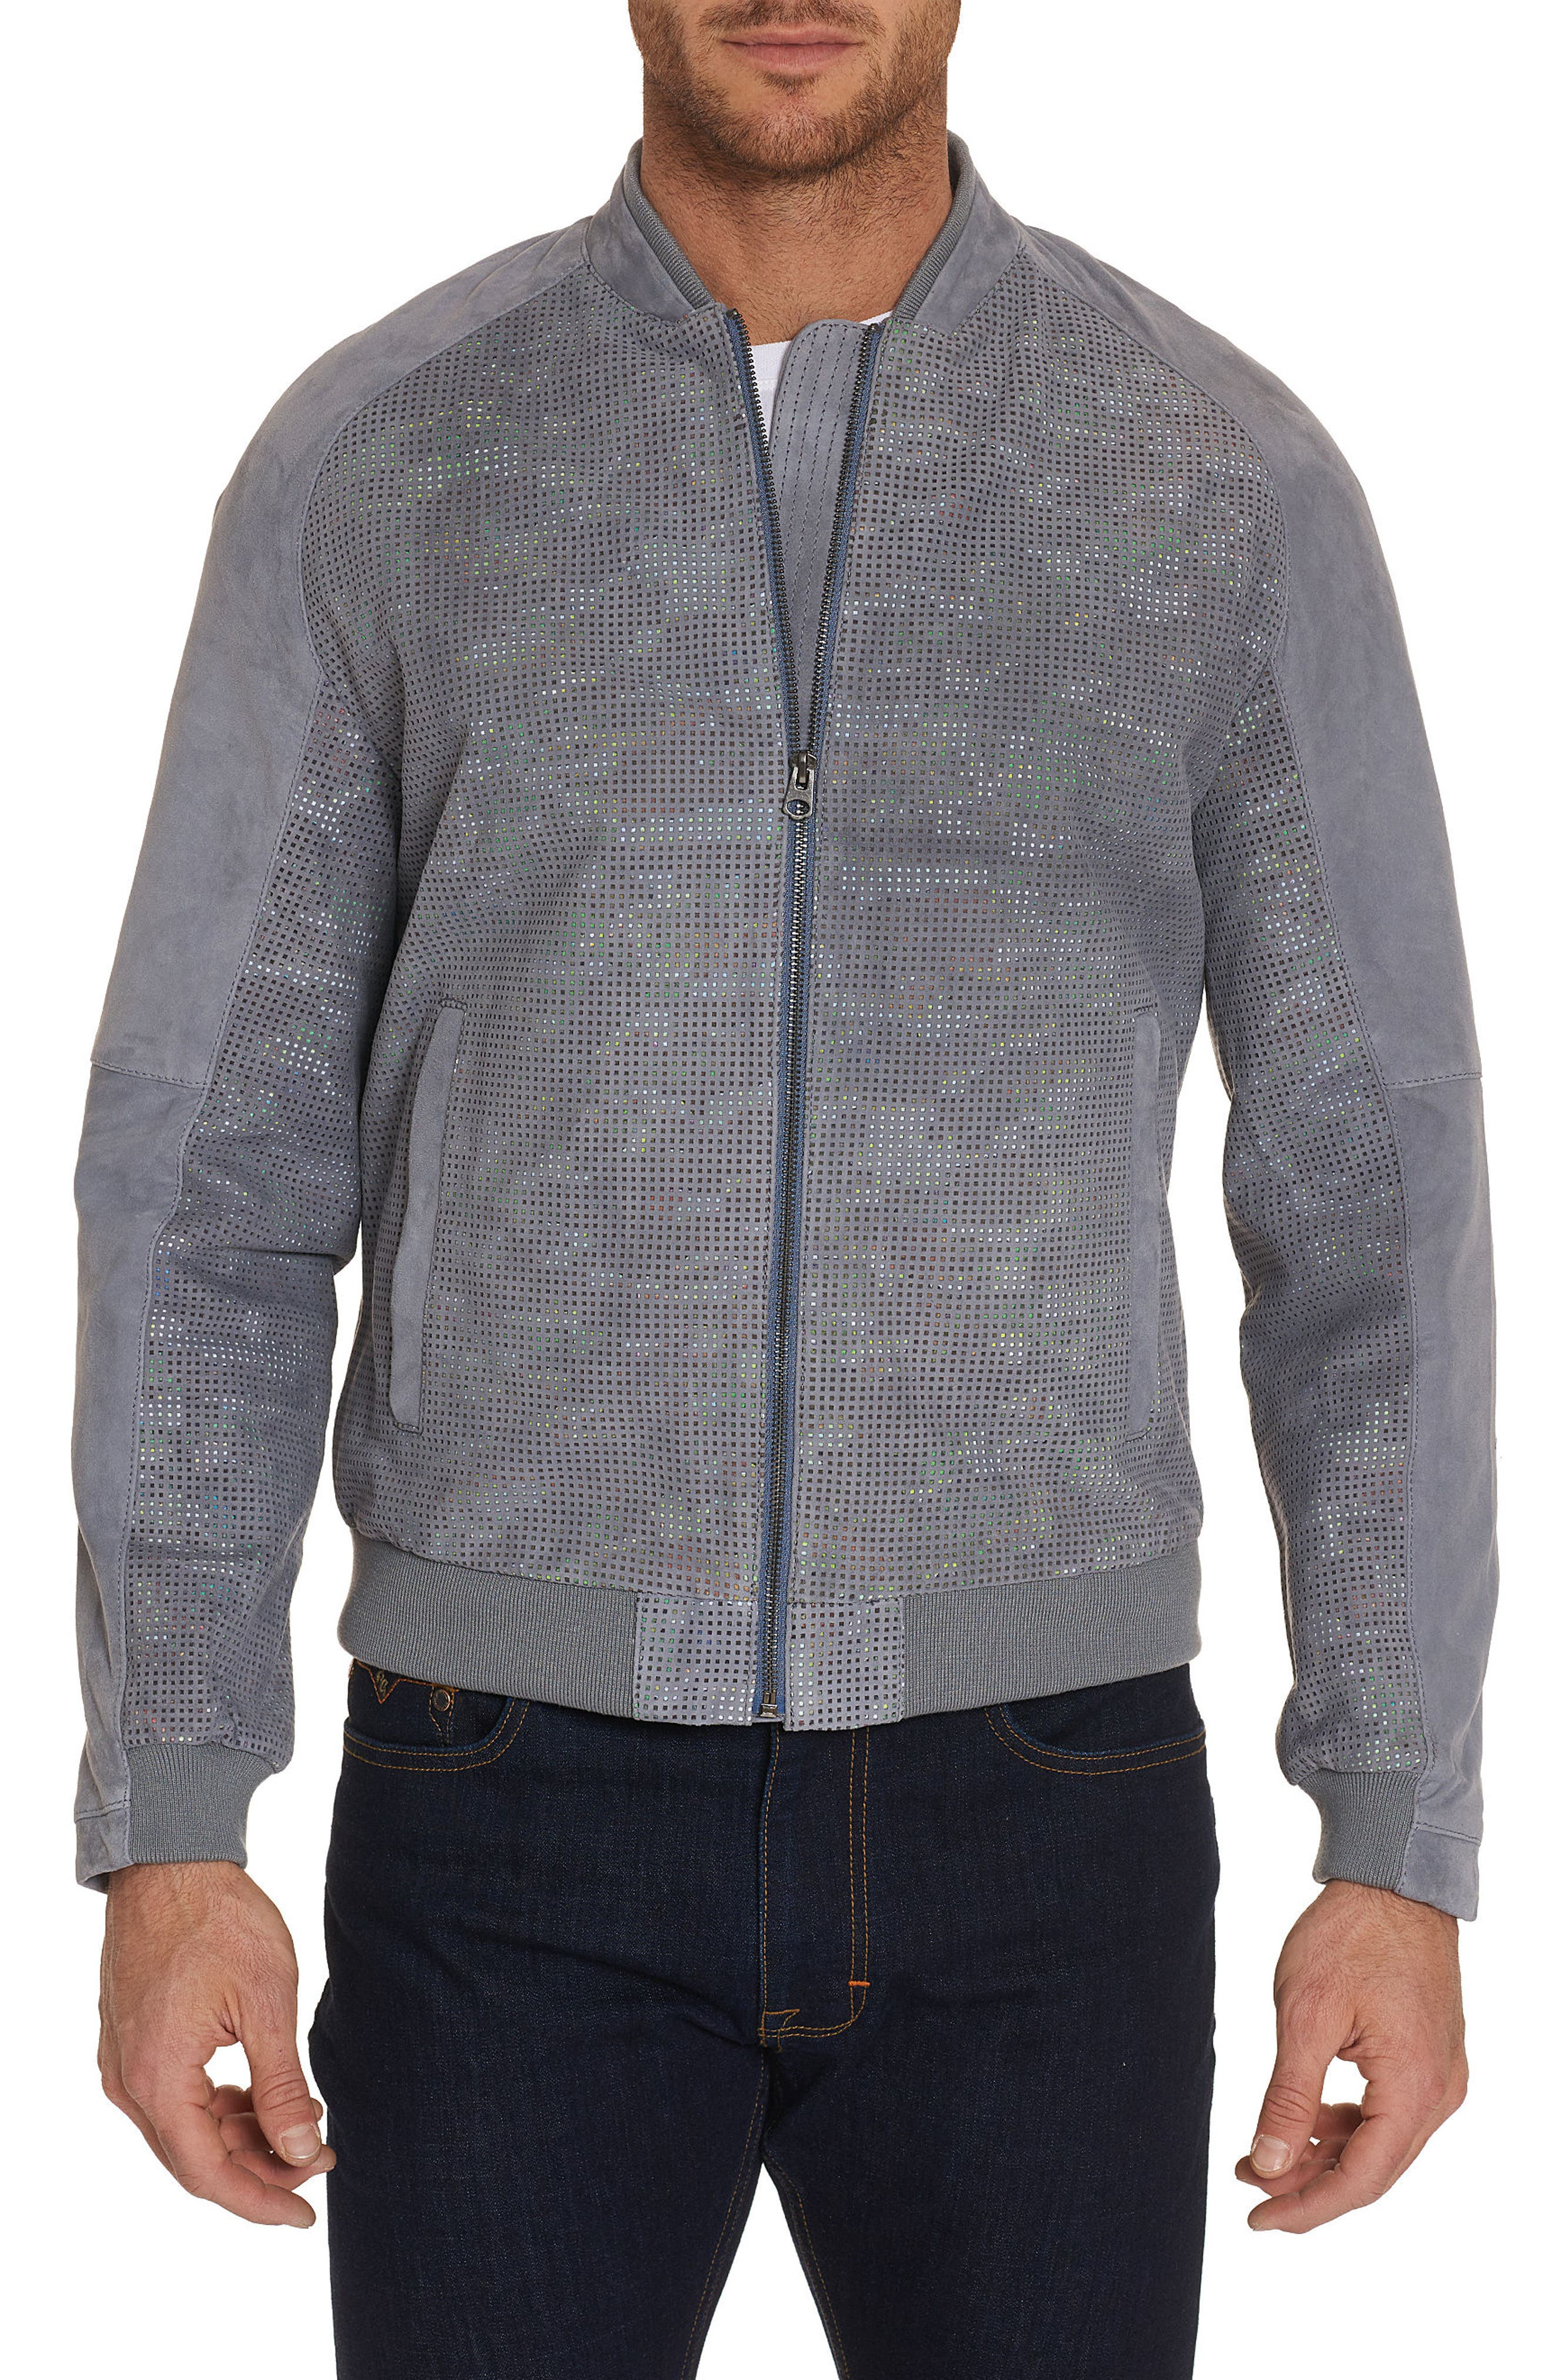 Ricardo Tailored Fit Suede Bomber Jacket,                             Main thumbnail 1, color,                             Grey